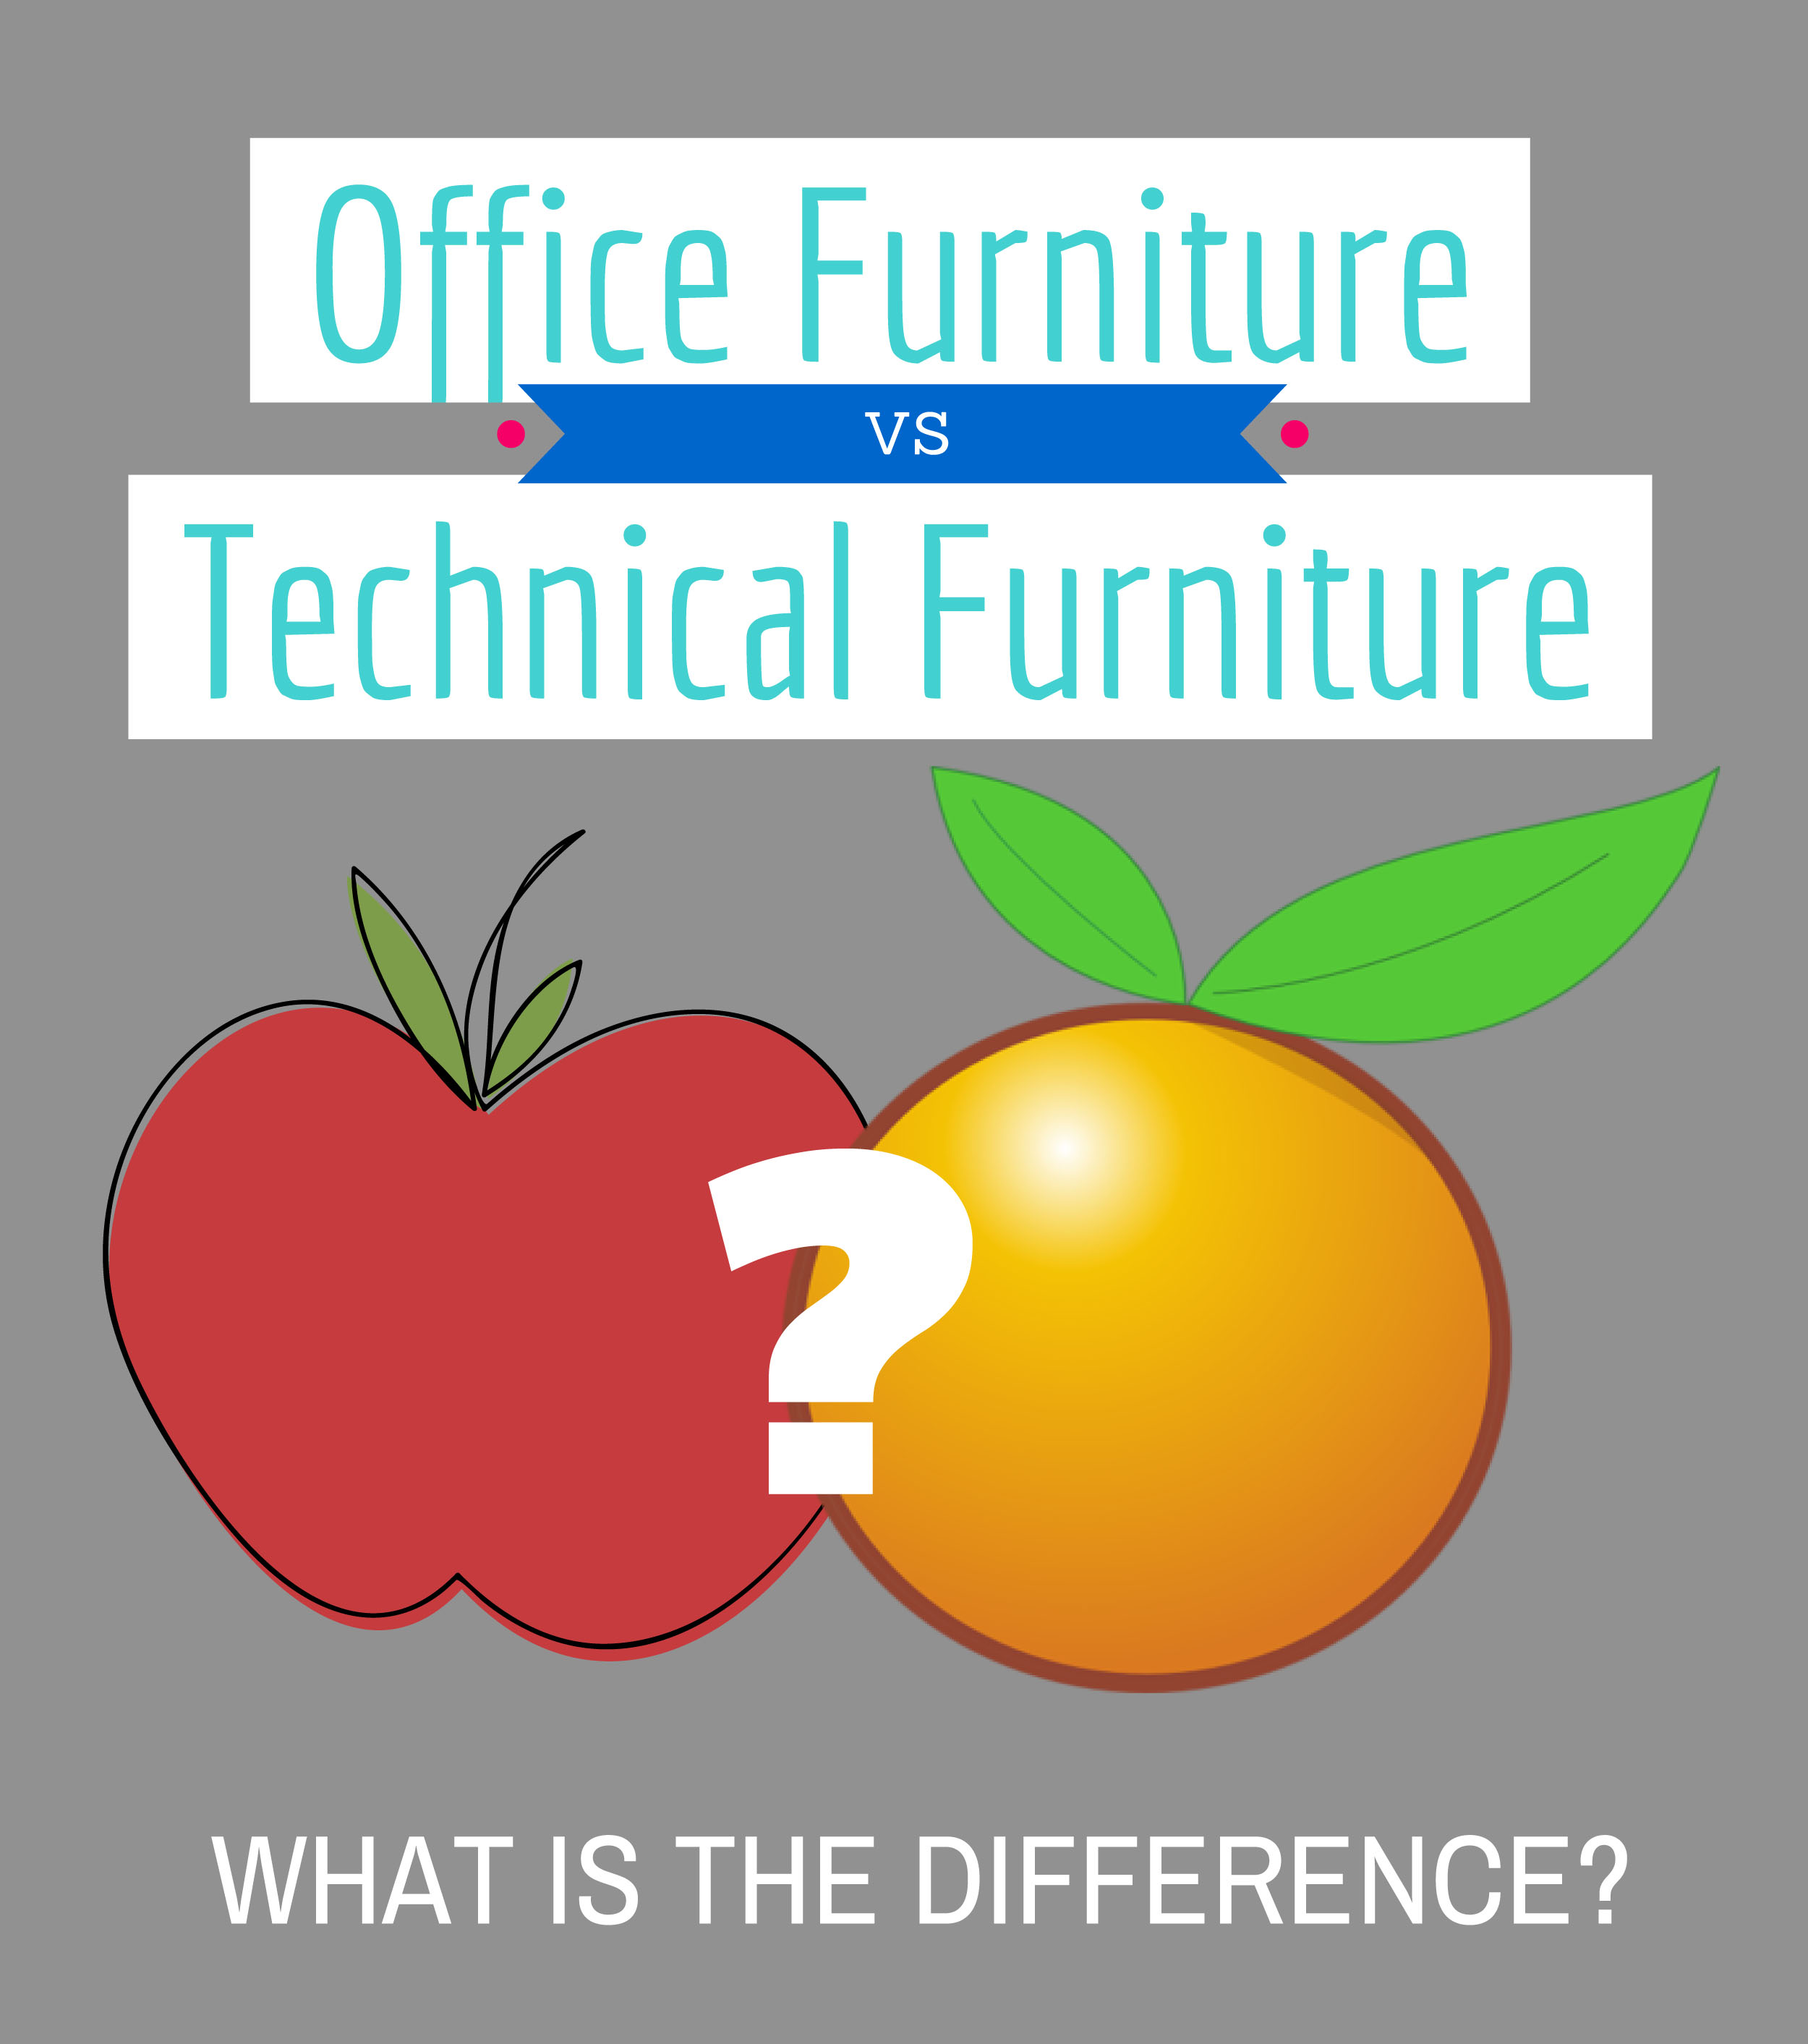 Office_Furniture_Vs_Technical_Furniture